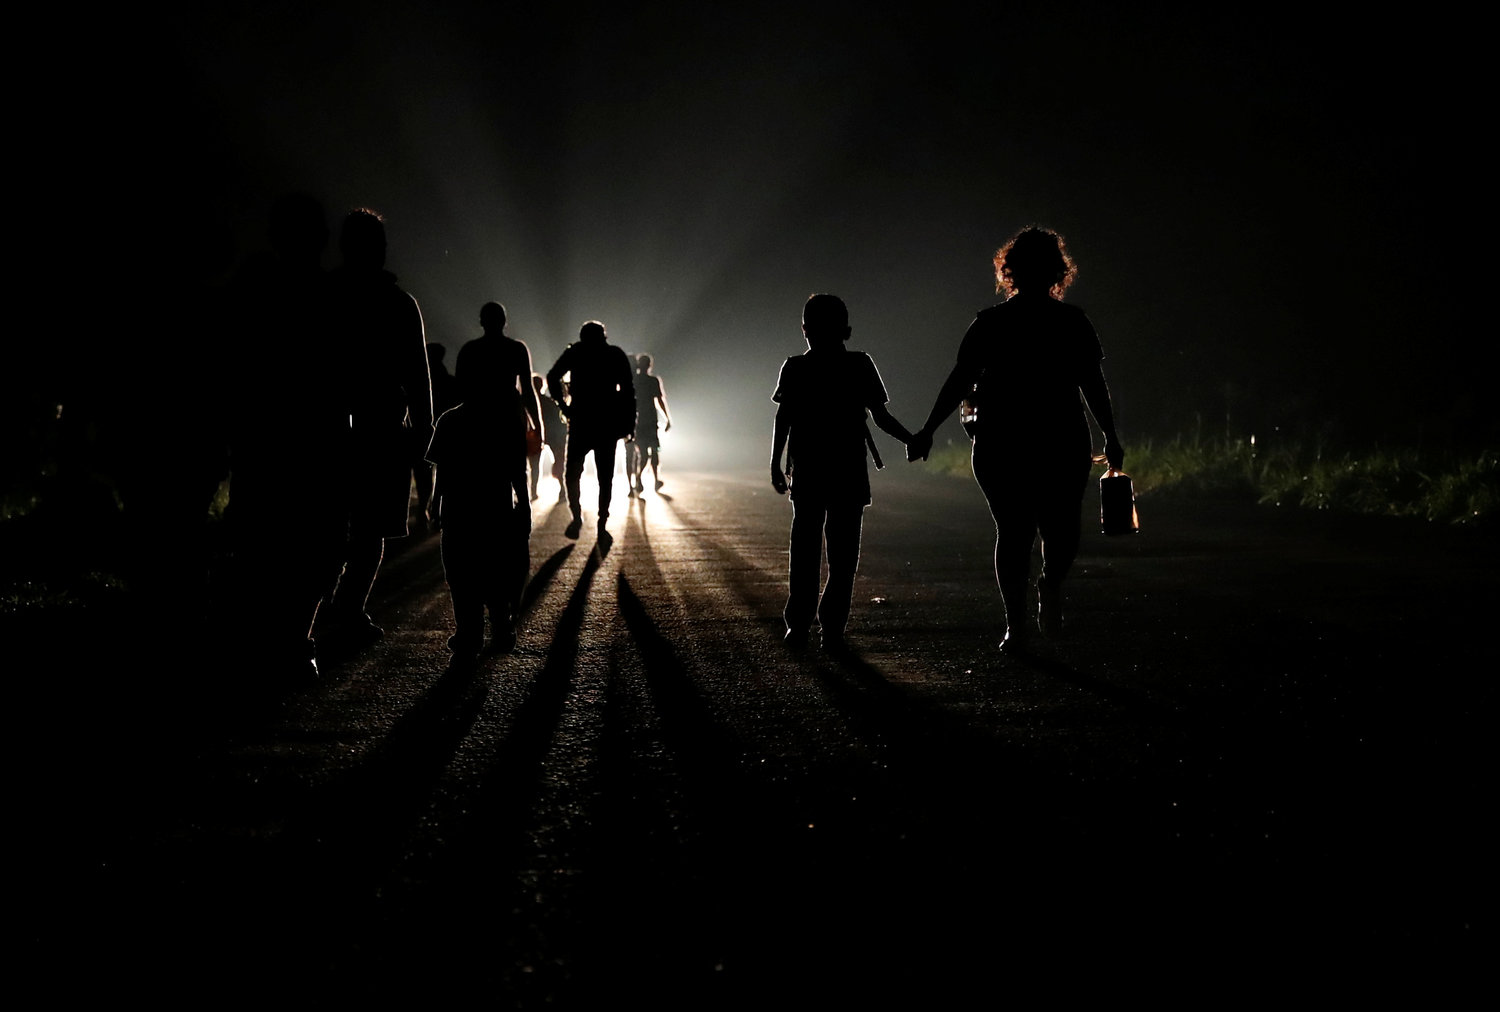 DARK OF NIGHT—A migrant woman, part of a caravan traveling to the United States, holds a child's hand as they walk along a road in the dark Nov. 2 in Huixtla, Mexico. The U.N. children's agency estimates that 2,300 children were traveling in the caravan.